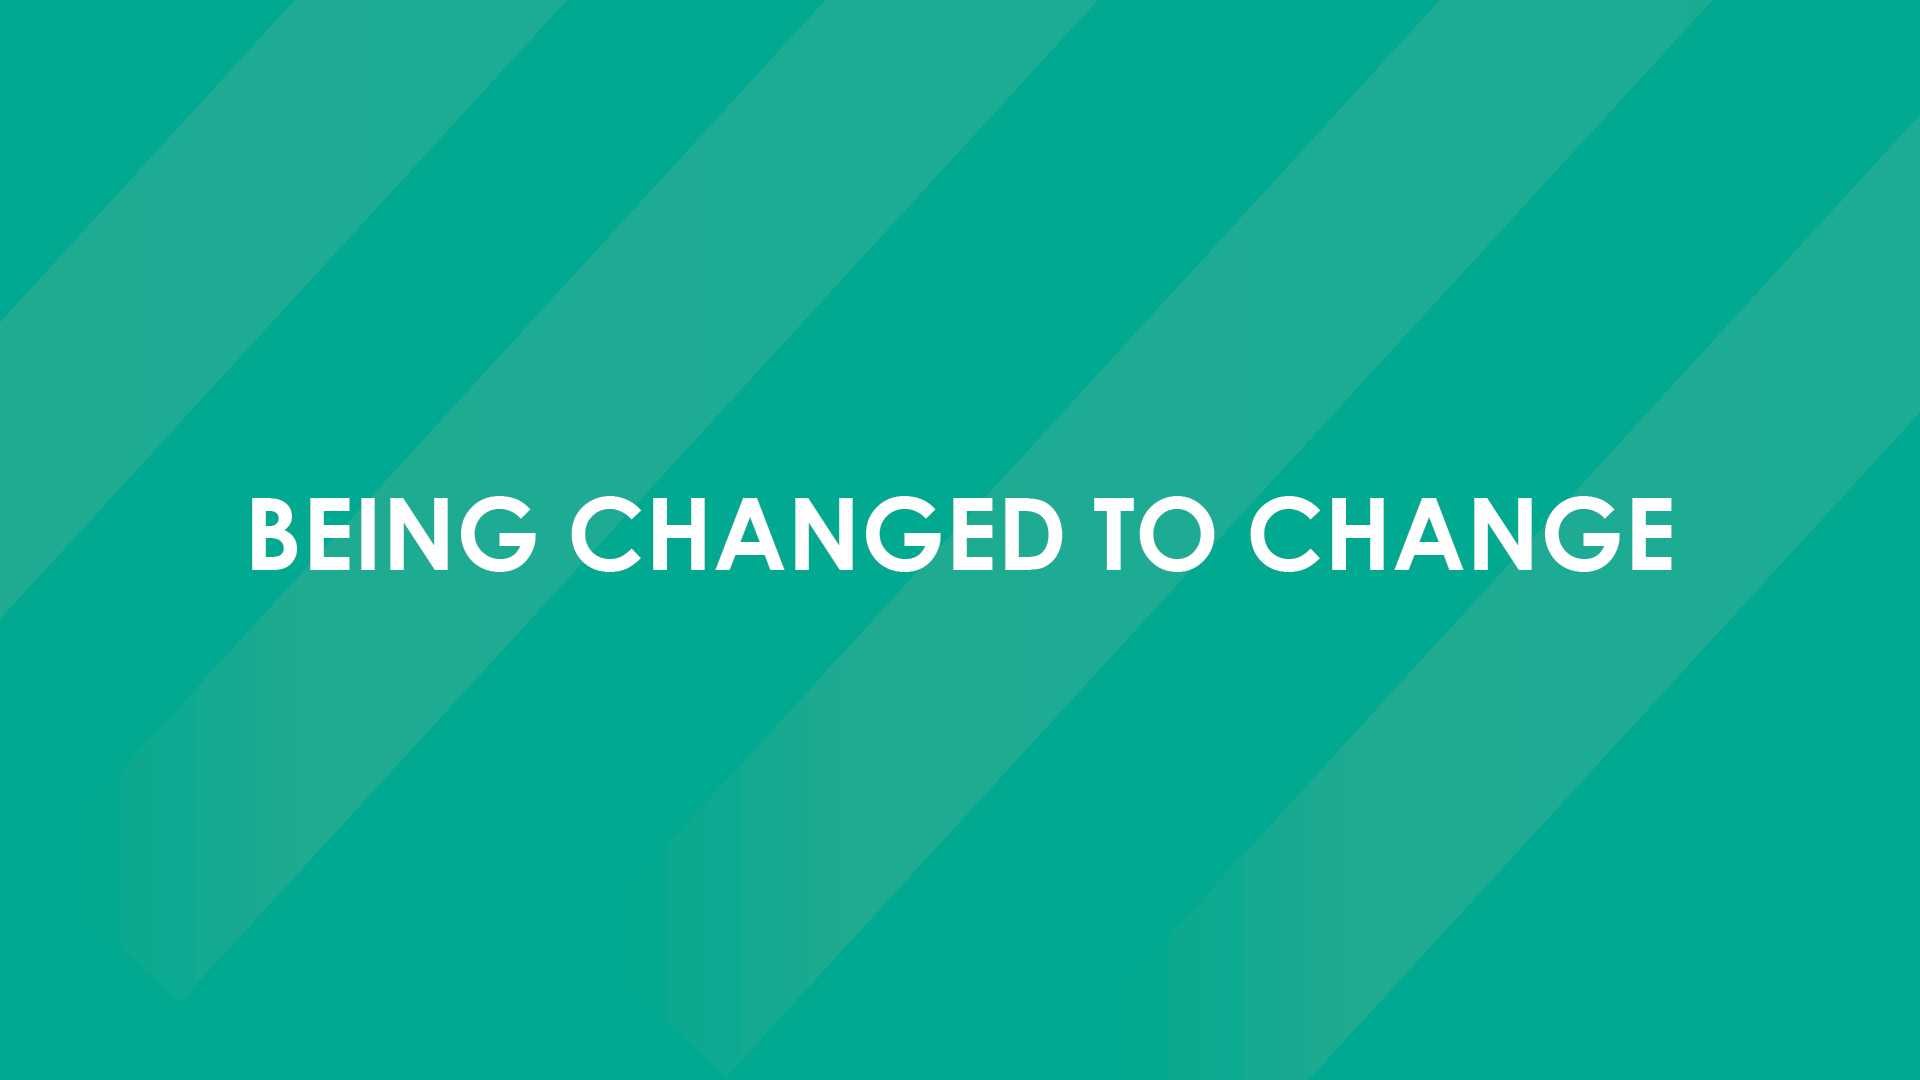 Being Changed to Change.jpg